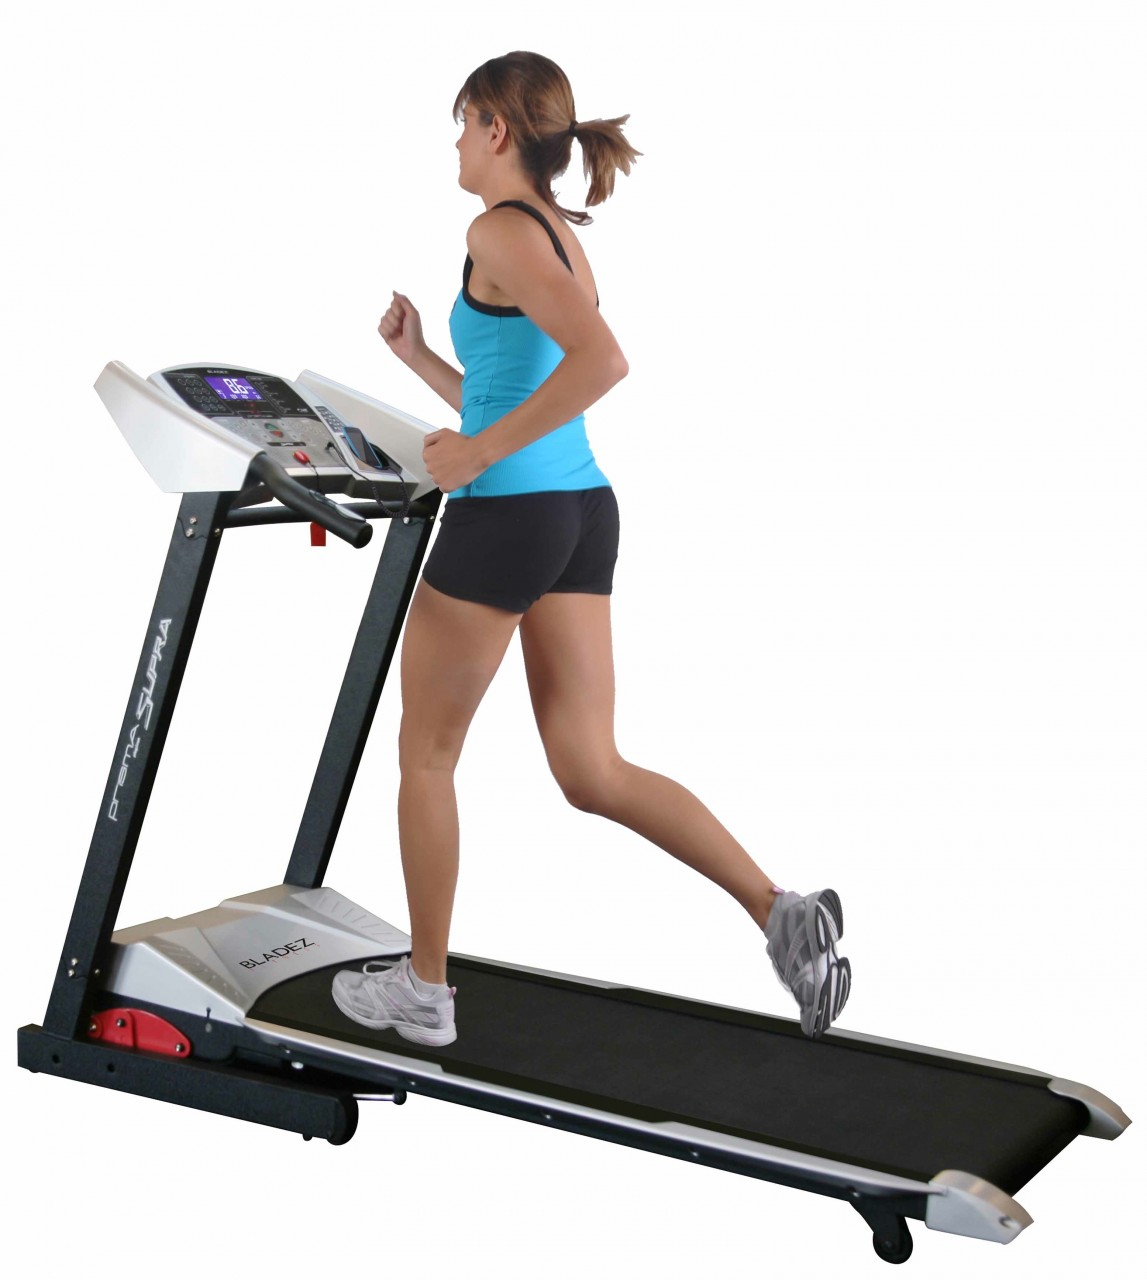 Shop for Treadmills in Exercise Machines. Buy products such as Weslo Cadence G i Folding Treadmill, New Model at Walmart and save.